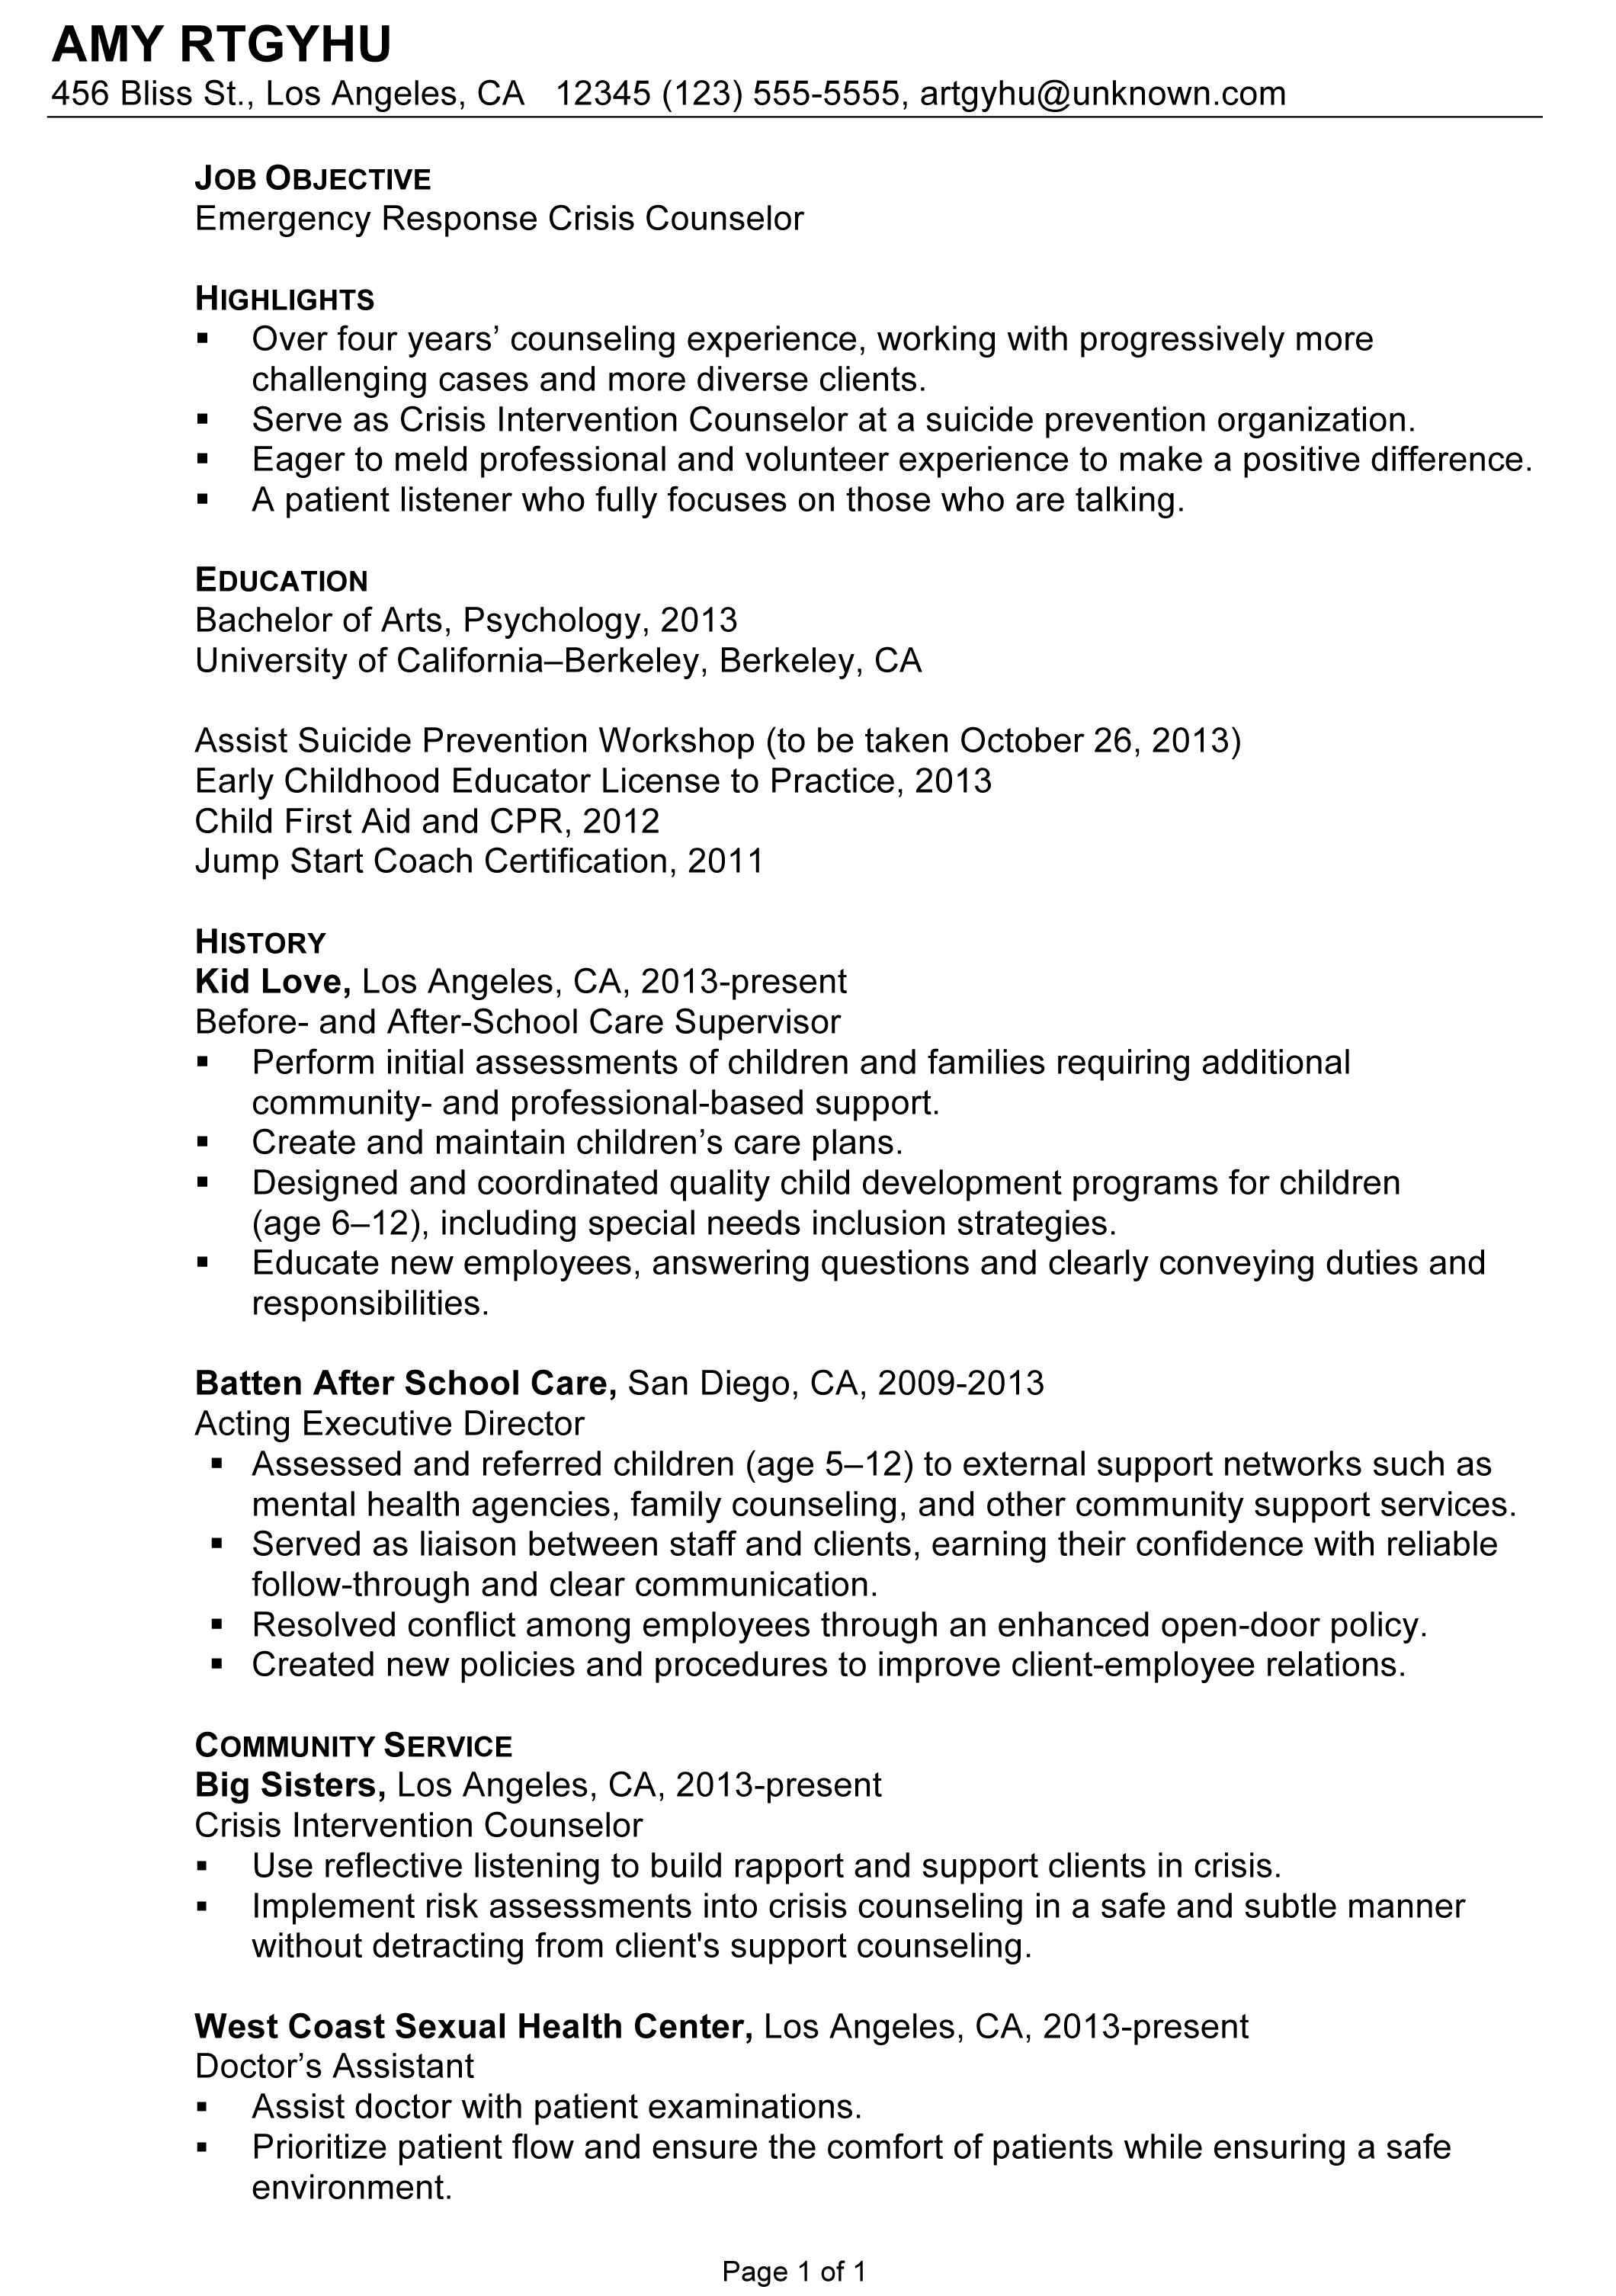 Chronological Resume Sample: Emergency Response Crisis ...